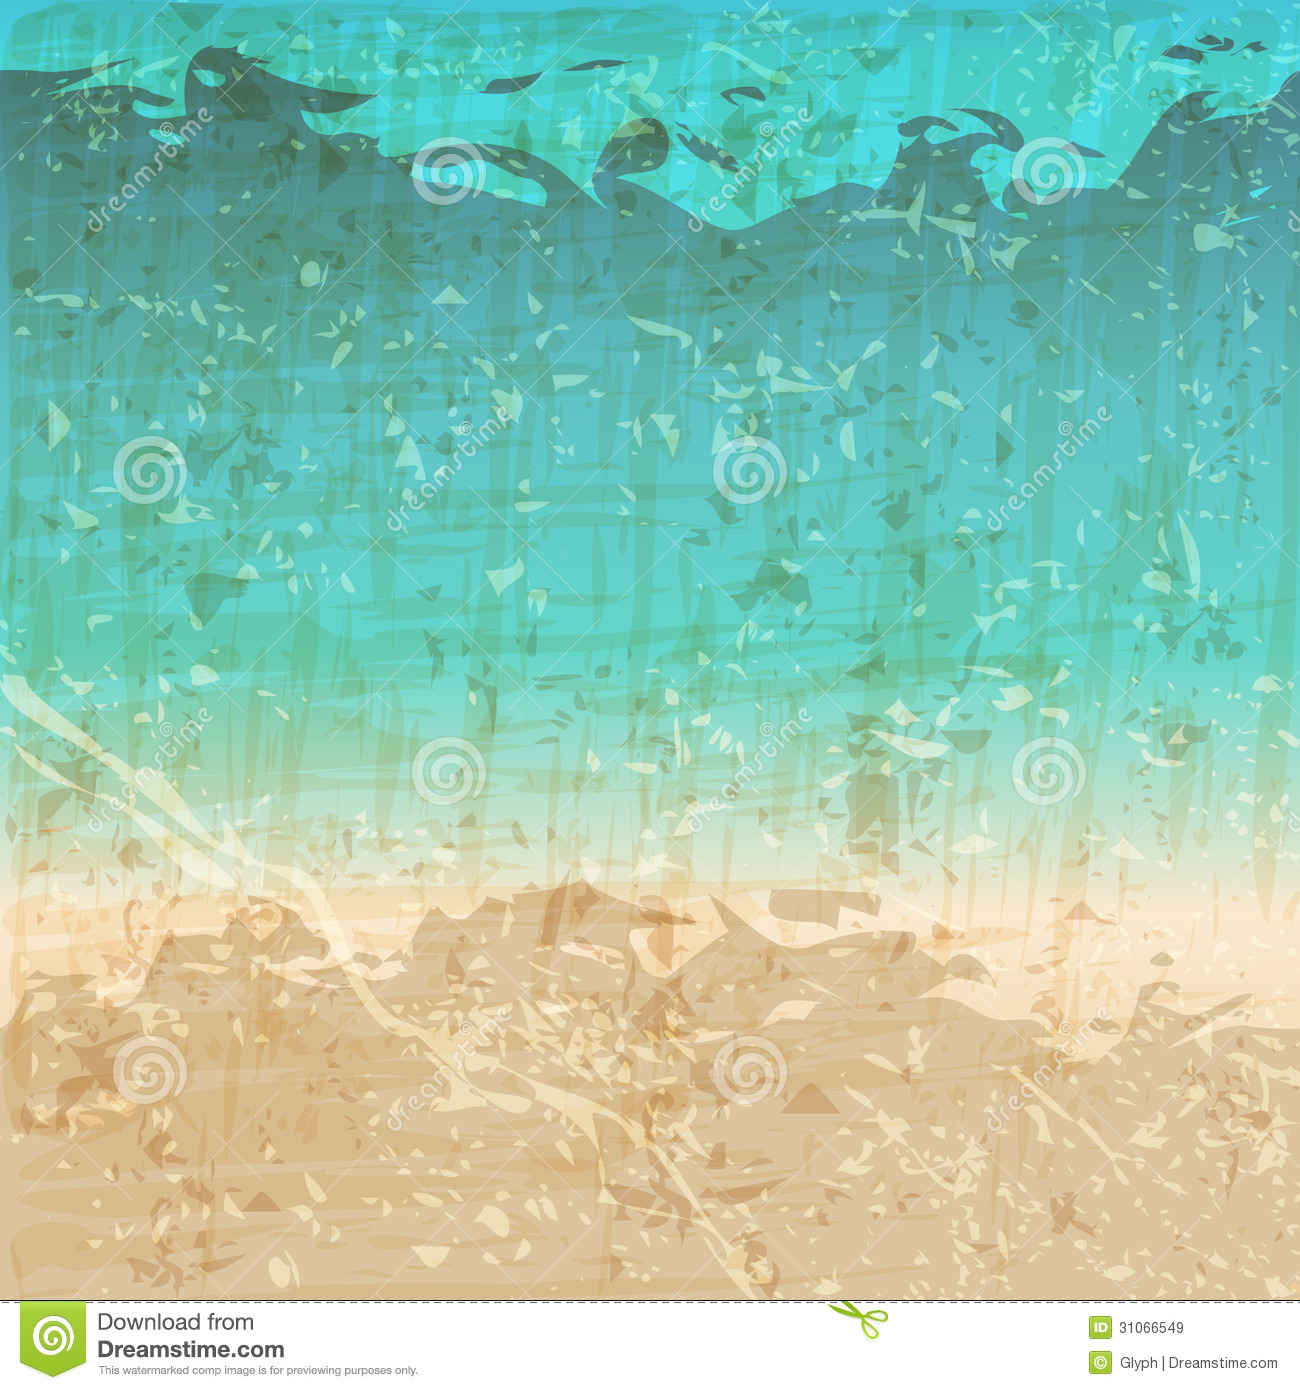 Retro Beach Illustration Royalty Free Stock Photo: Vintage, Abstract Texture Royalty Free Stock Images